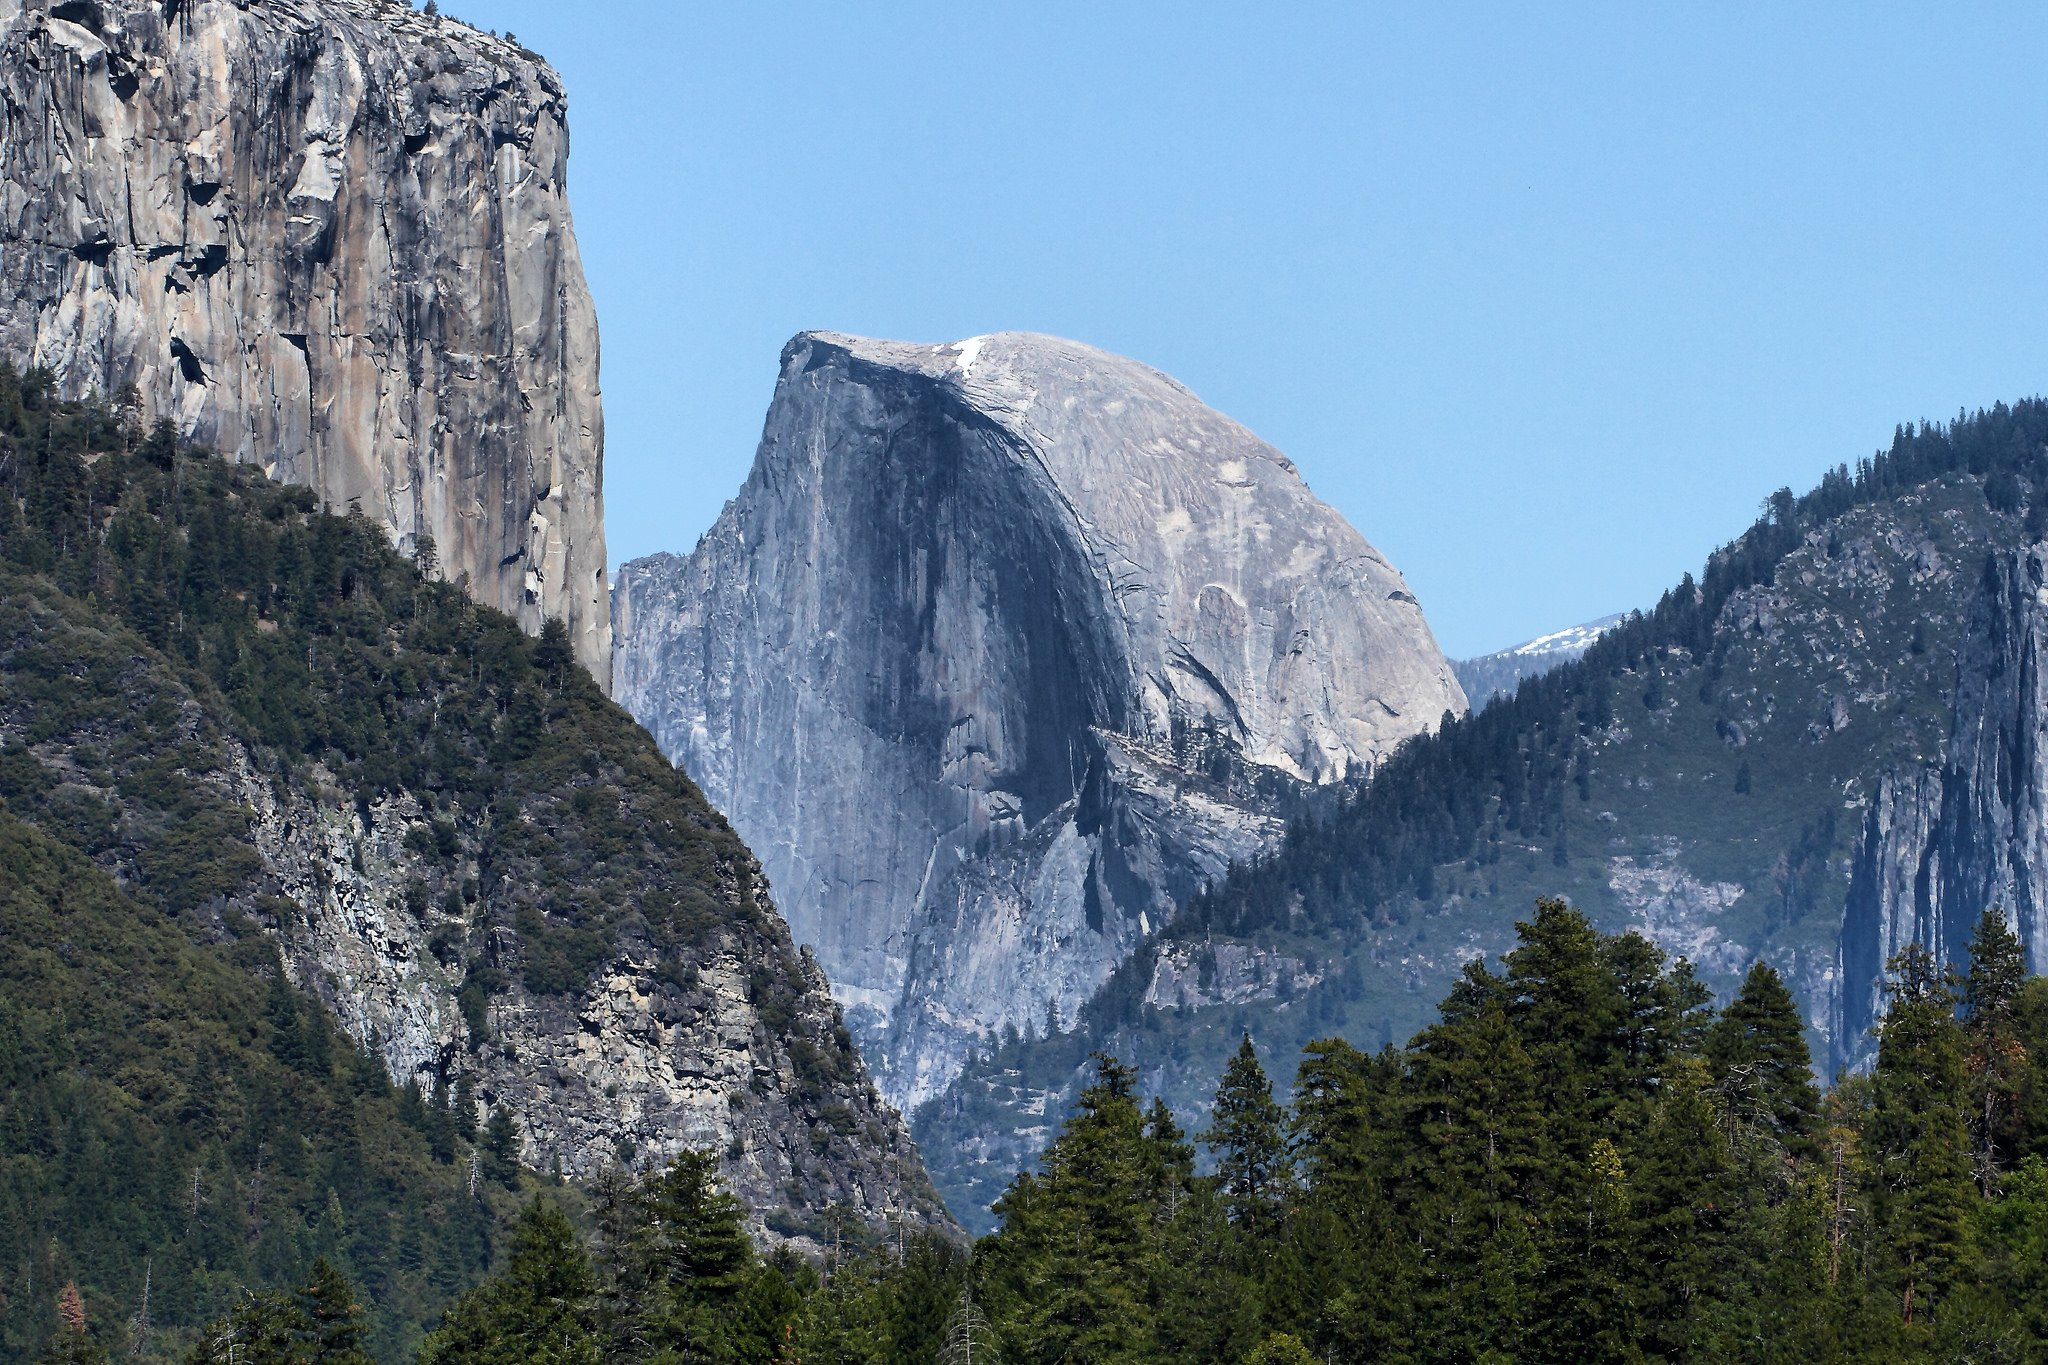 Half Dome Yosemite National Park by: Airwolfhound (CC)